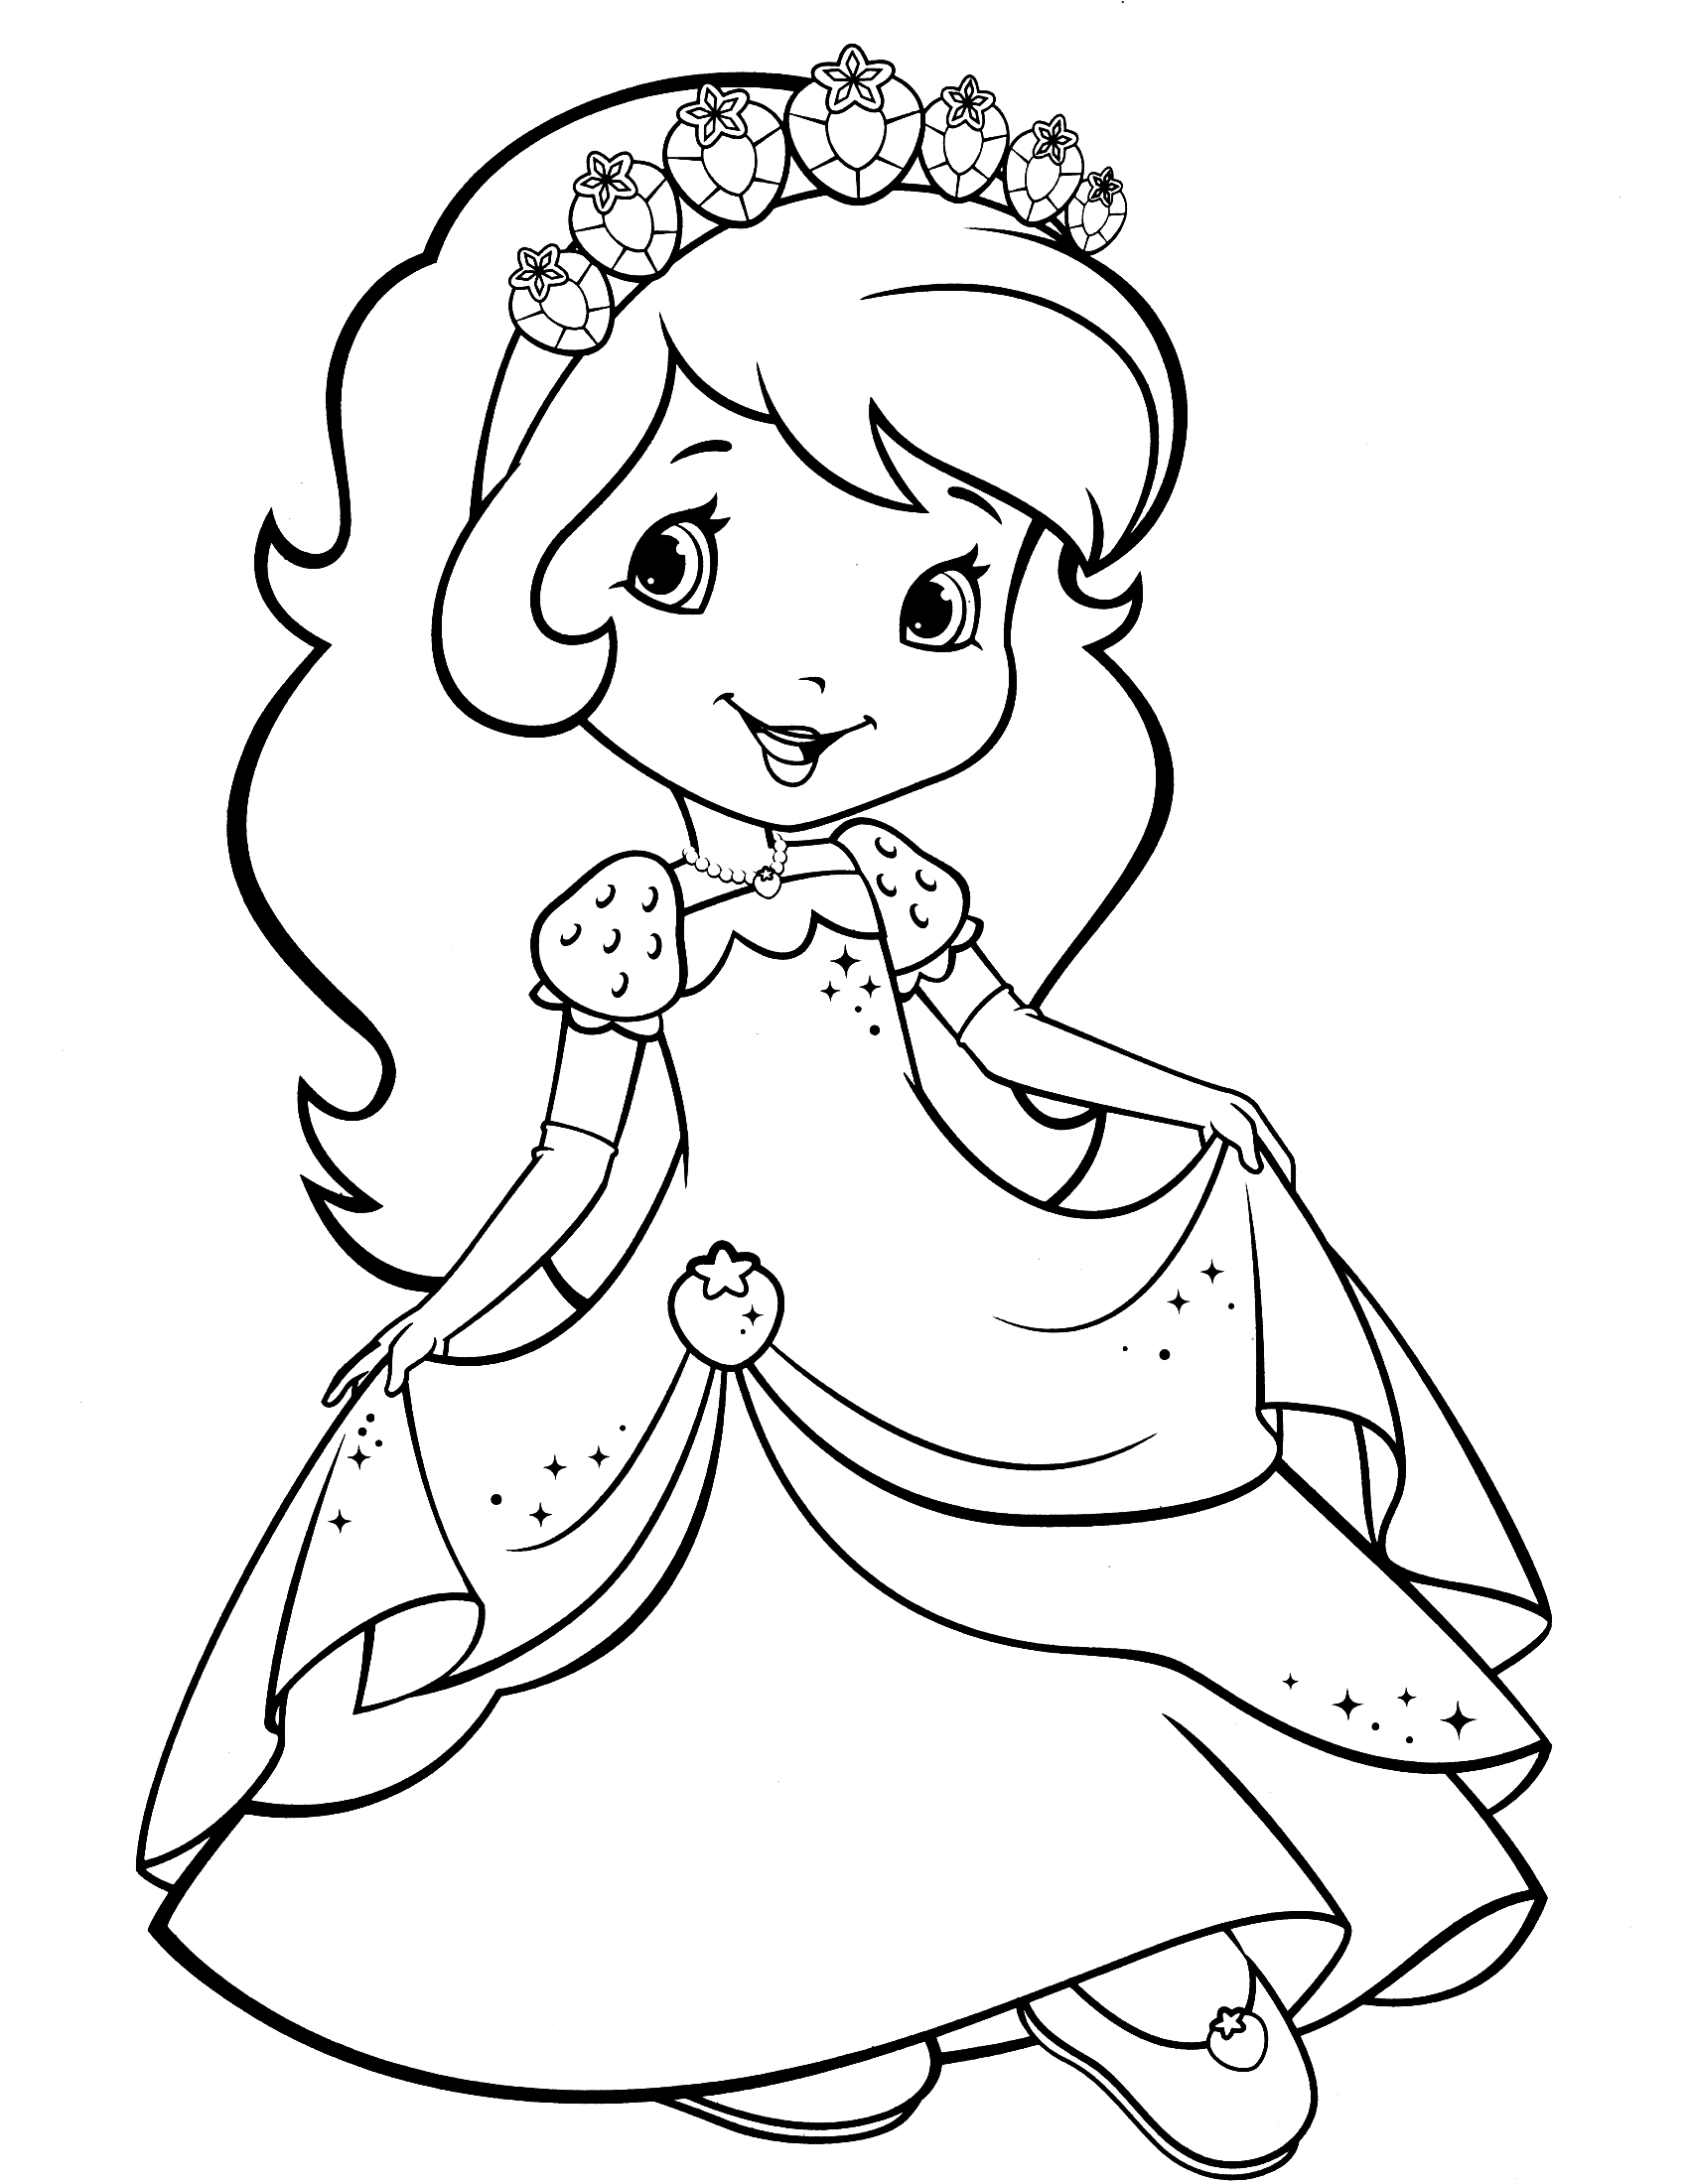 1700x2200 Strawberry Shortcake Coloring Page Strawberry Shortcake Coloring